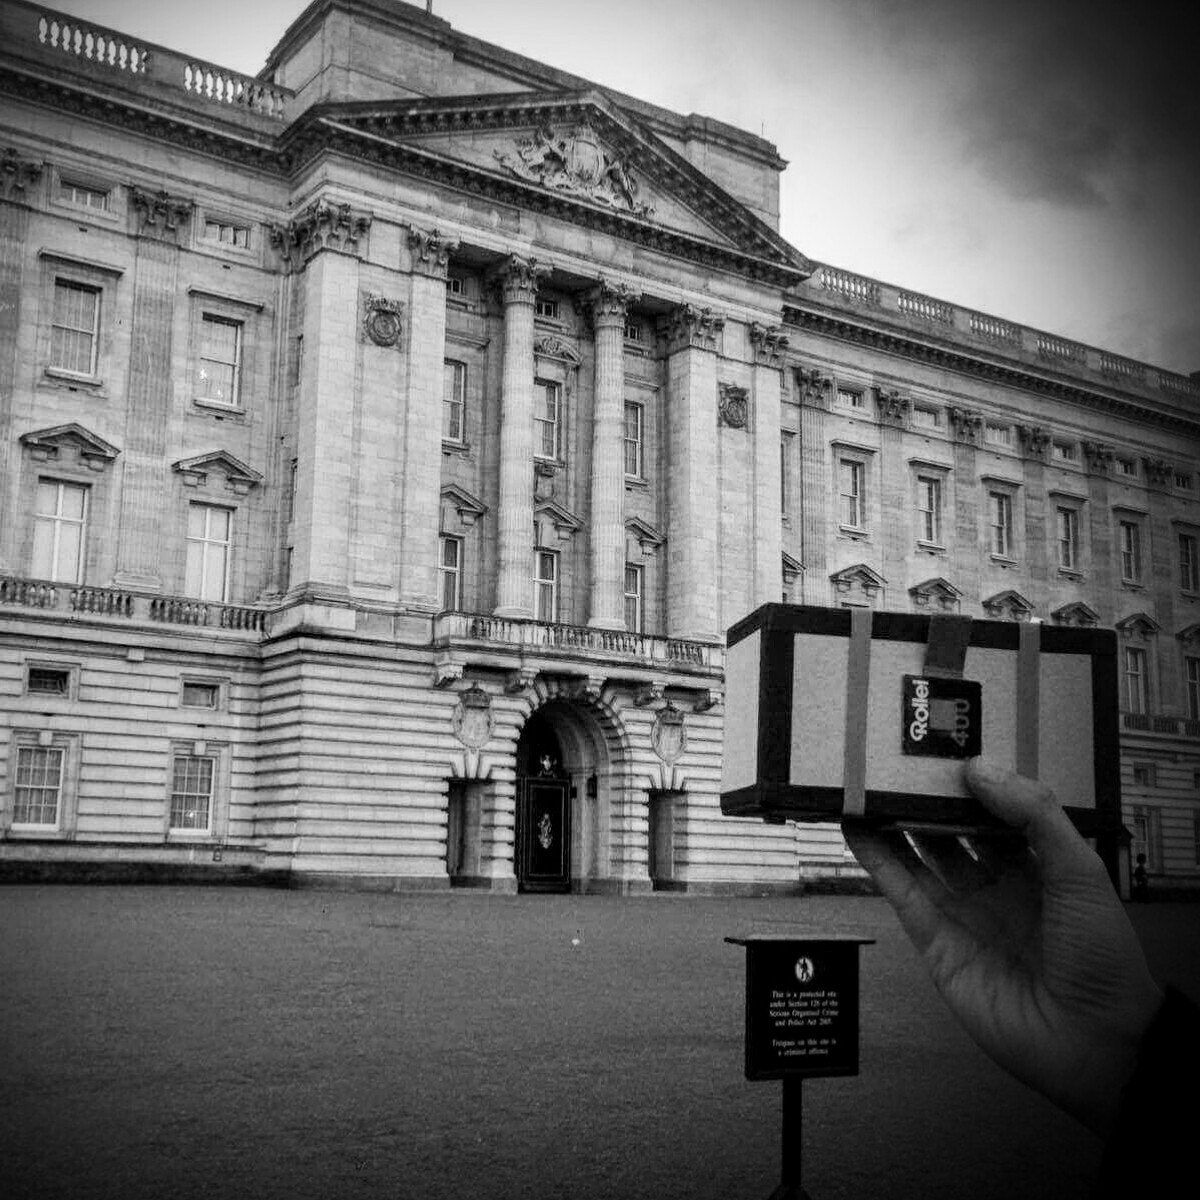 sightseeing TOSCA....  #pinhole #toscapinhole #pinholetosca #pinholecamera #estenopeica #stenope #stenopeica #handmade #alternativeprocesses #imagerie #film #120film #analogico #argentique #buckinghampalace #helloelizabeth #london